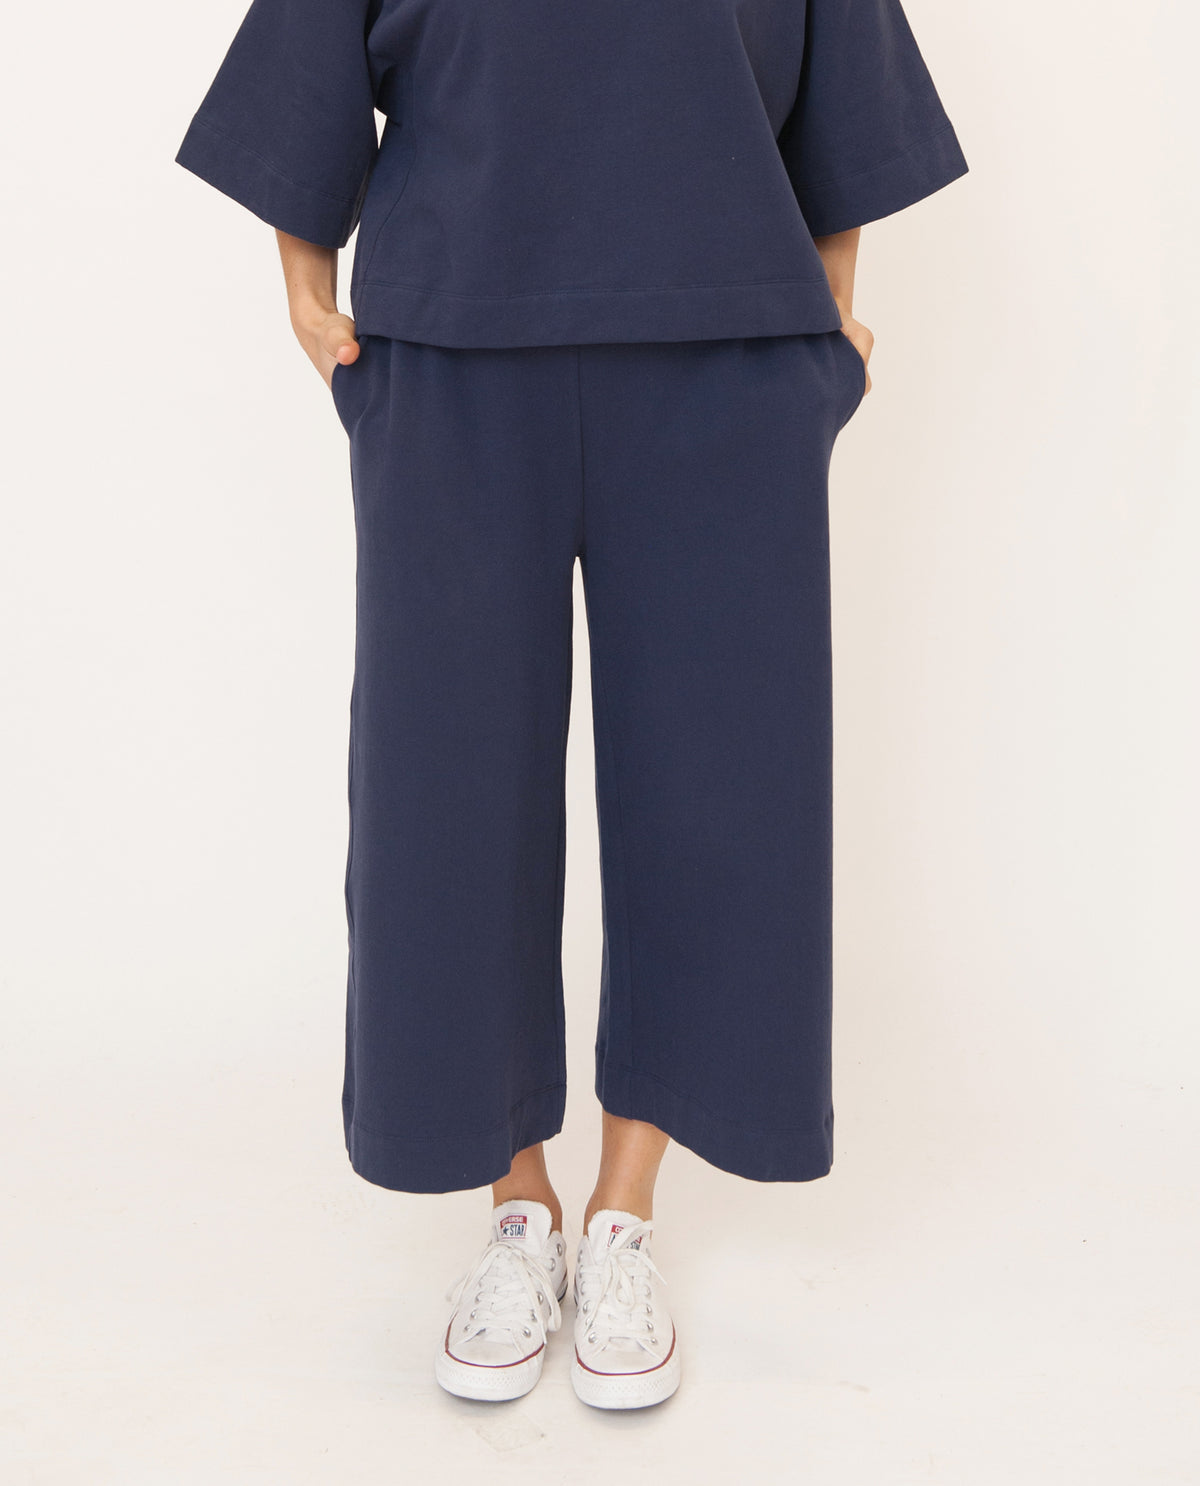 NICKY Organic Cotton Trouser In Navy